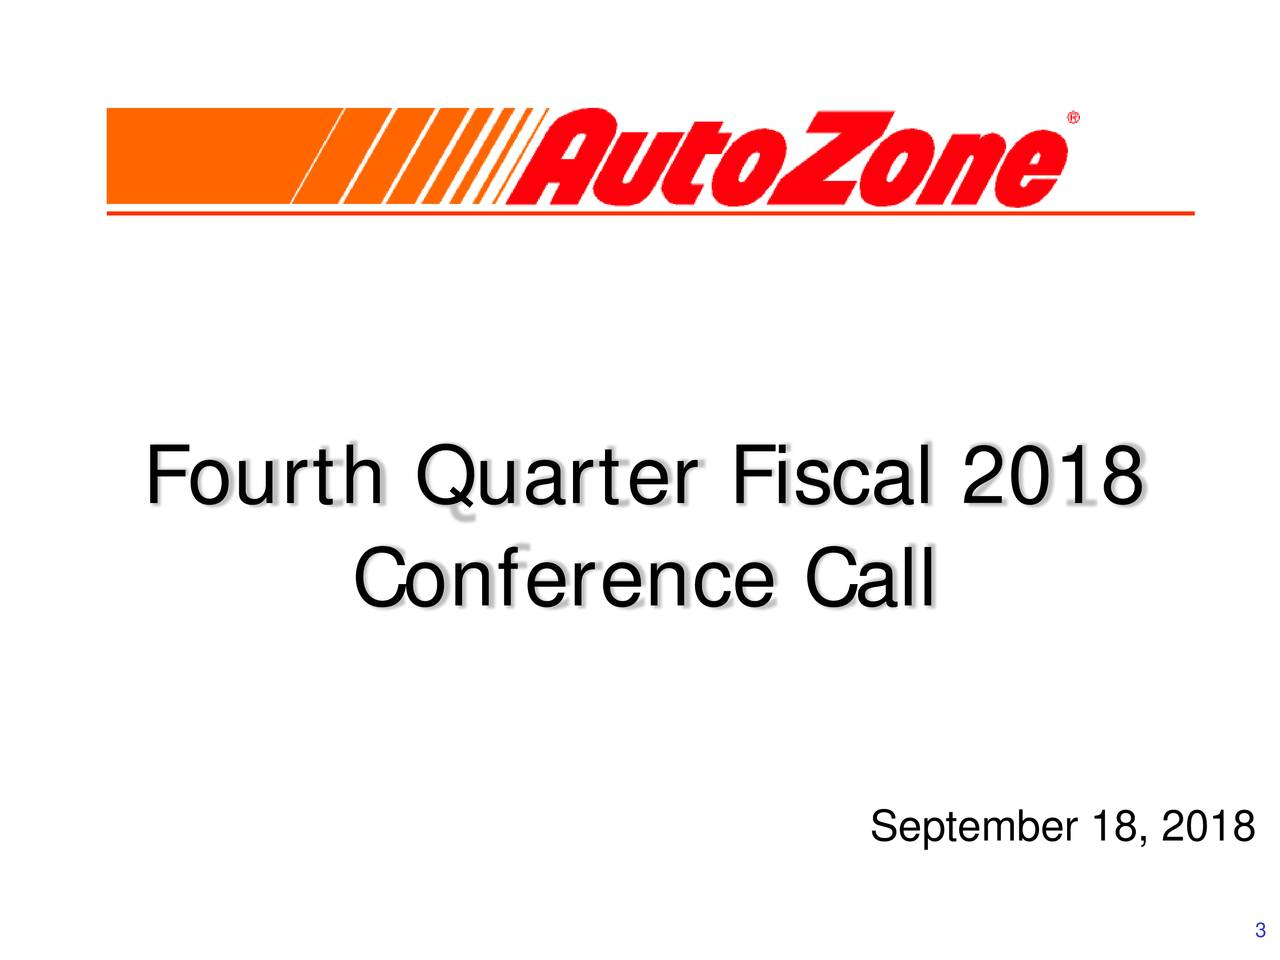 Conference Call September 18, 2018